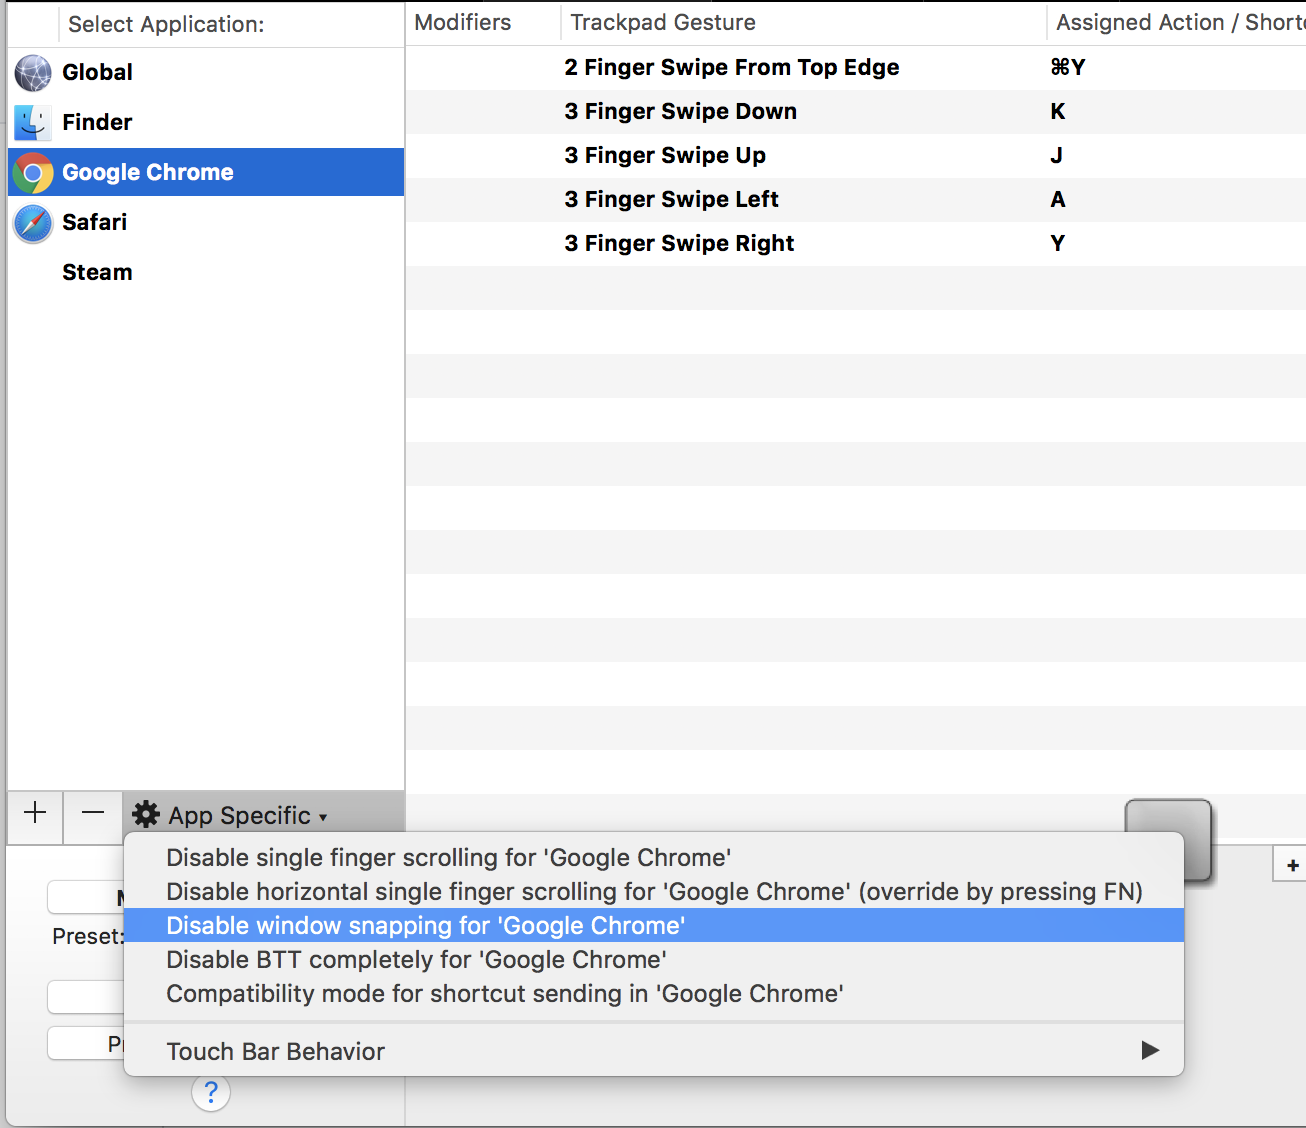 Window Snapping: Interfering with full-screen games/apps